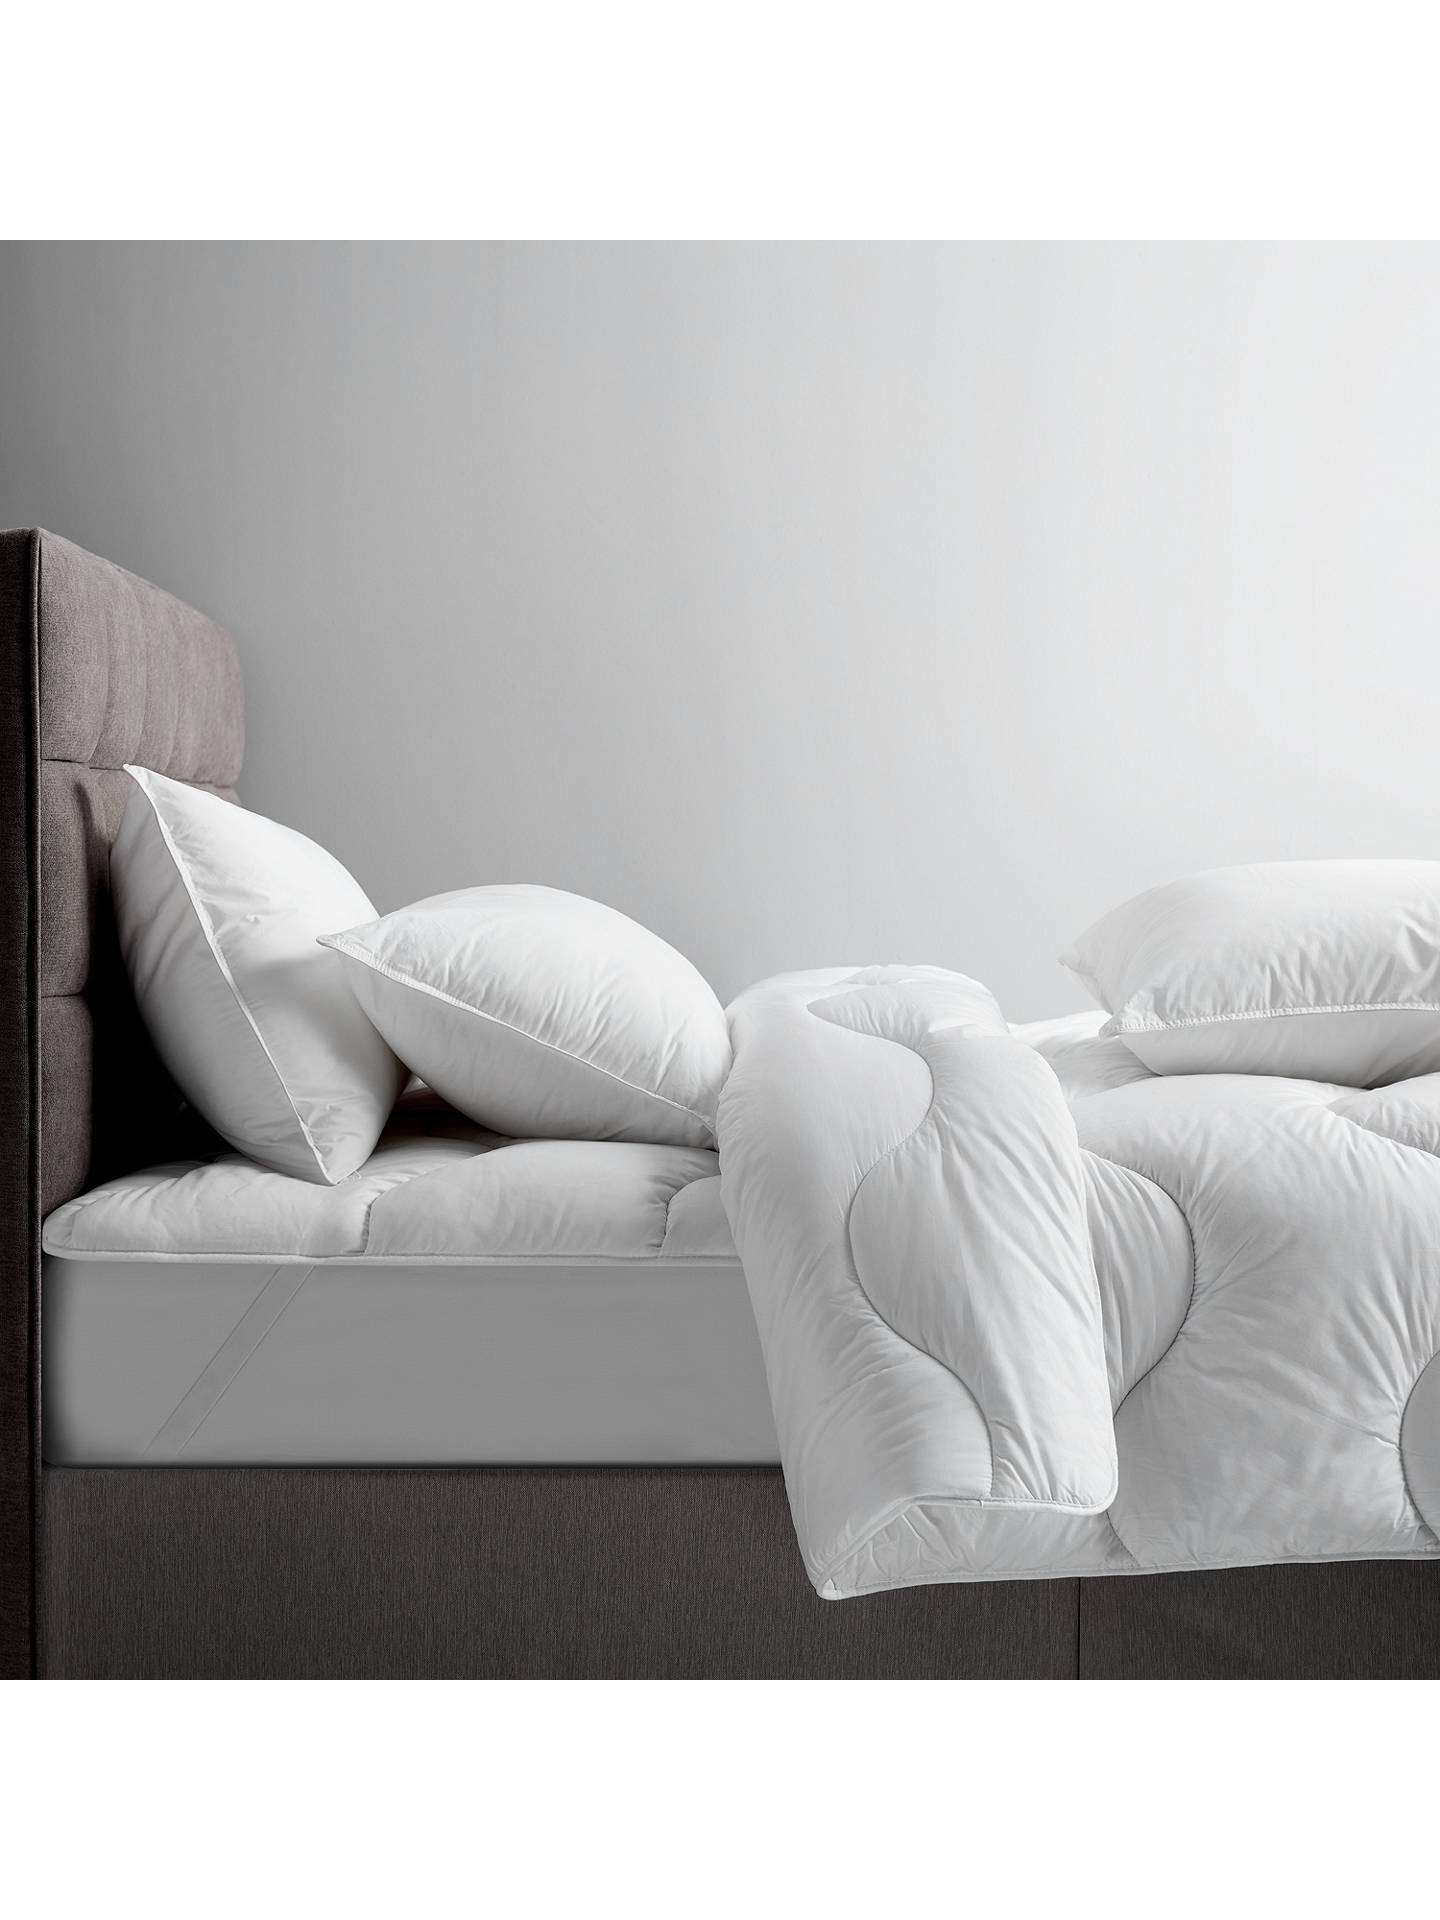 BuyJohn Lewis & Partners Synthetic Soft Like Down Duvet, 10.5 Tog, Single Online at johnlewis.com